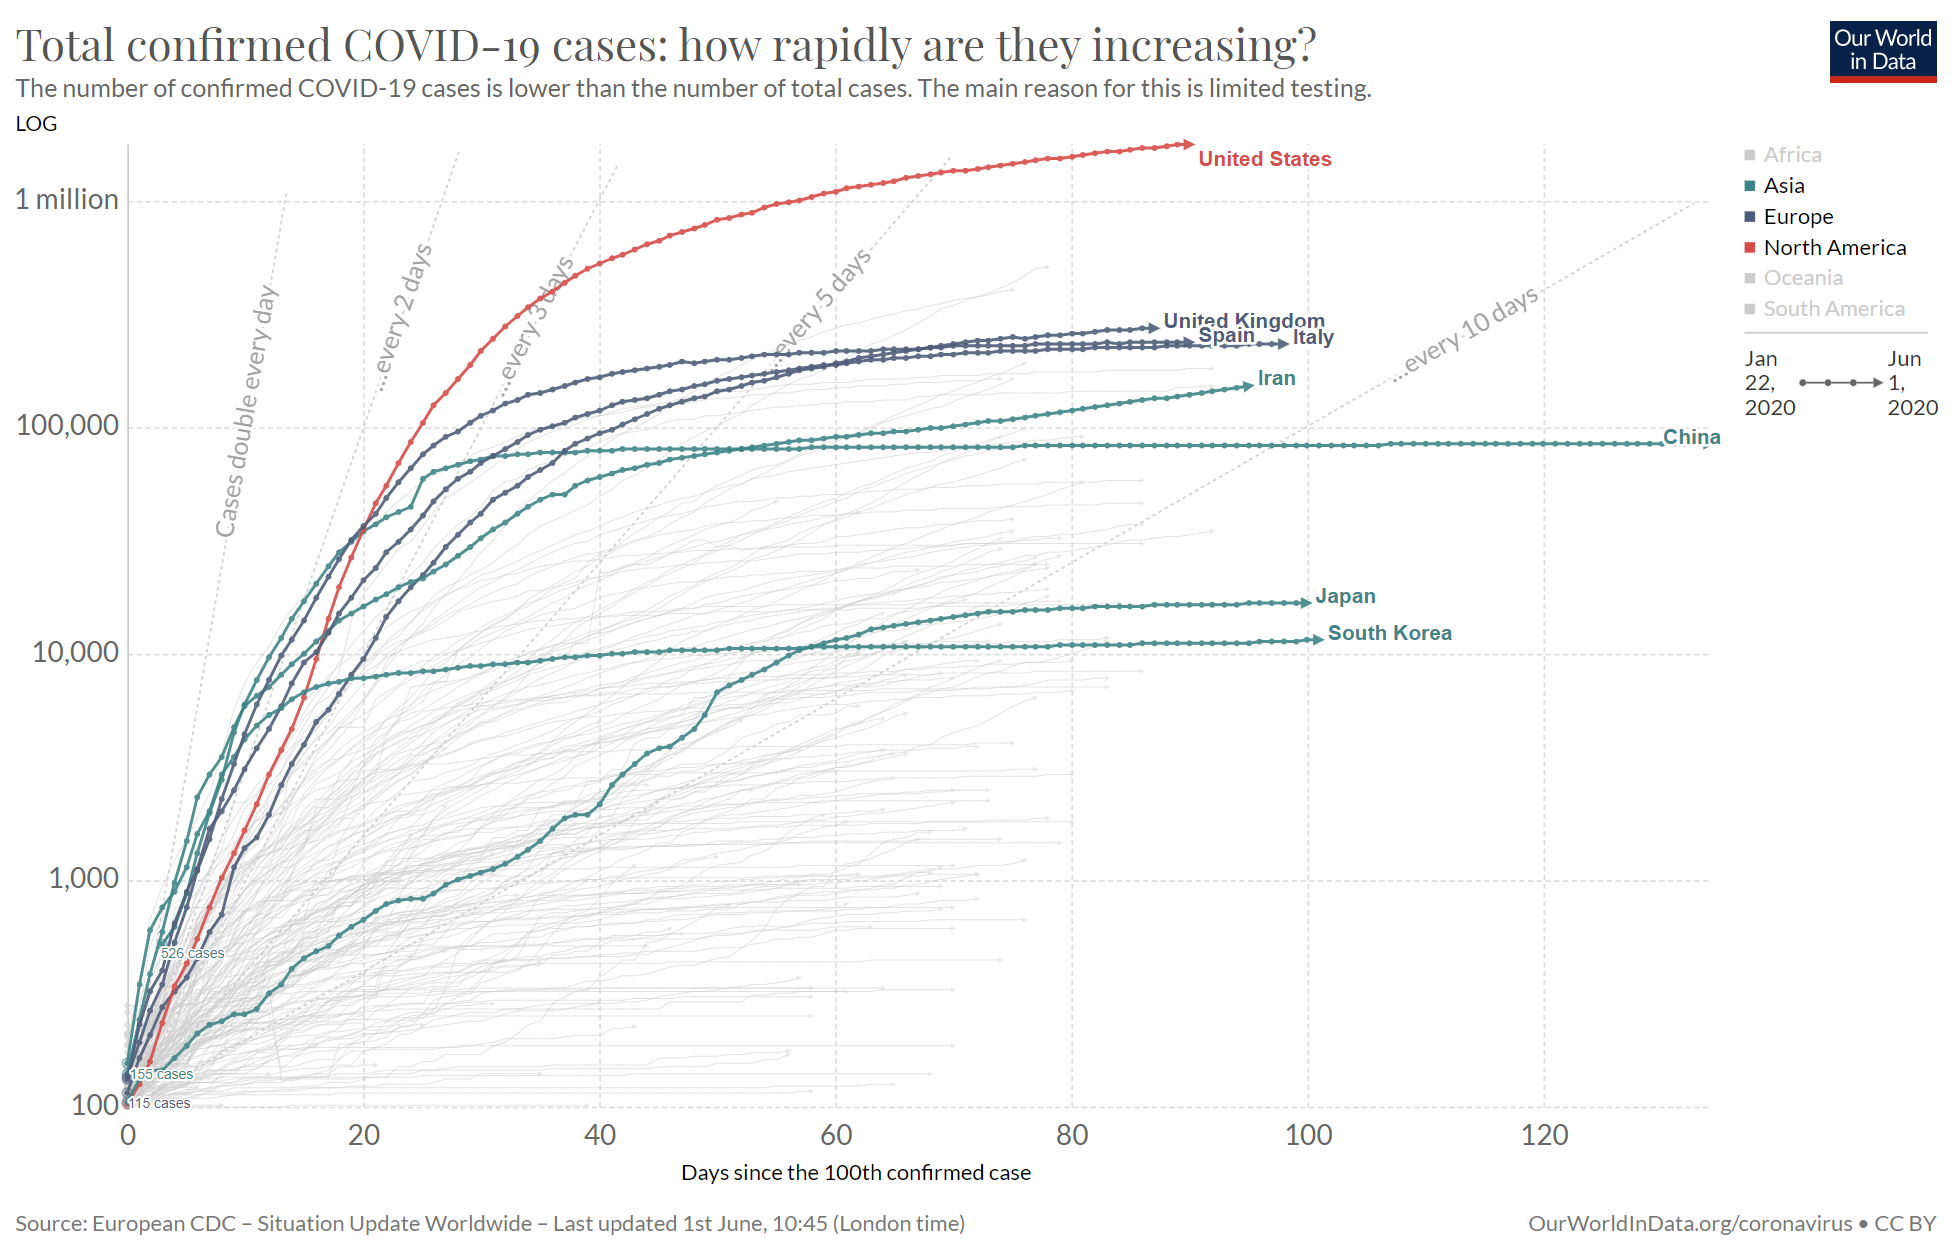 COVID-19 Case Curves in 8 Selected Countries